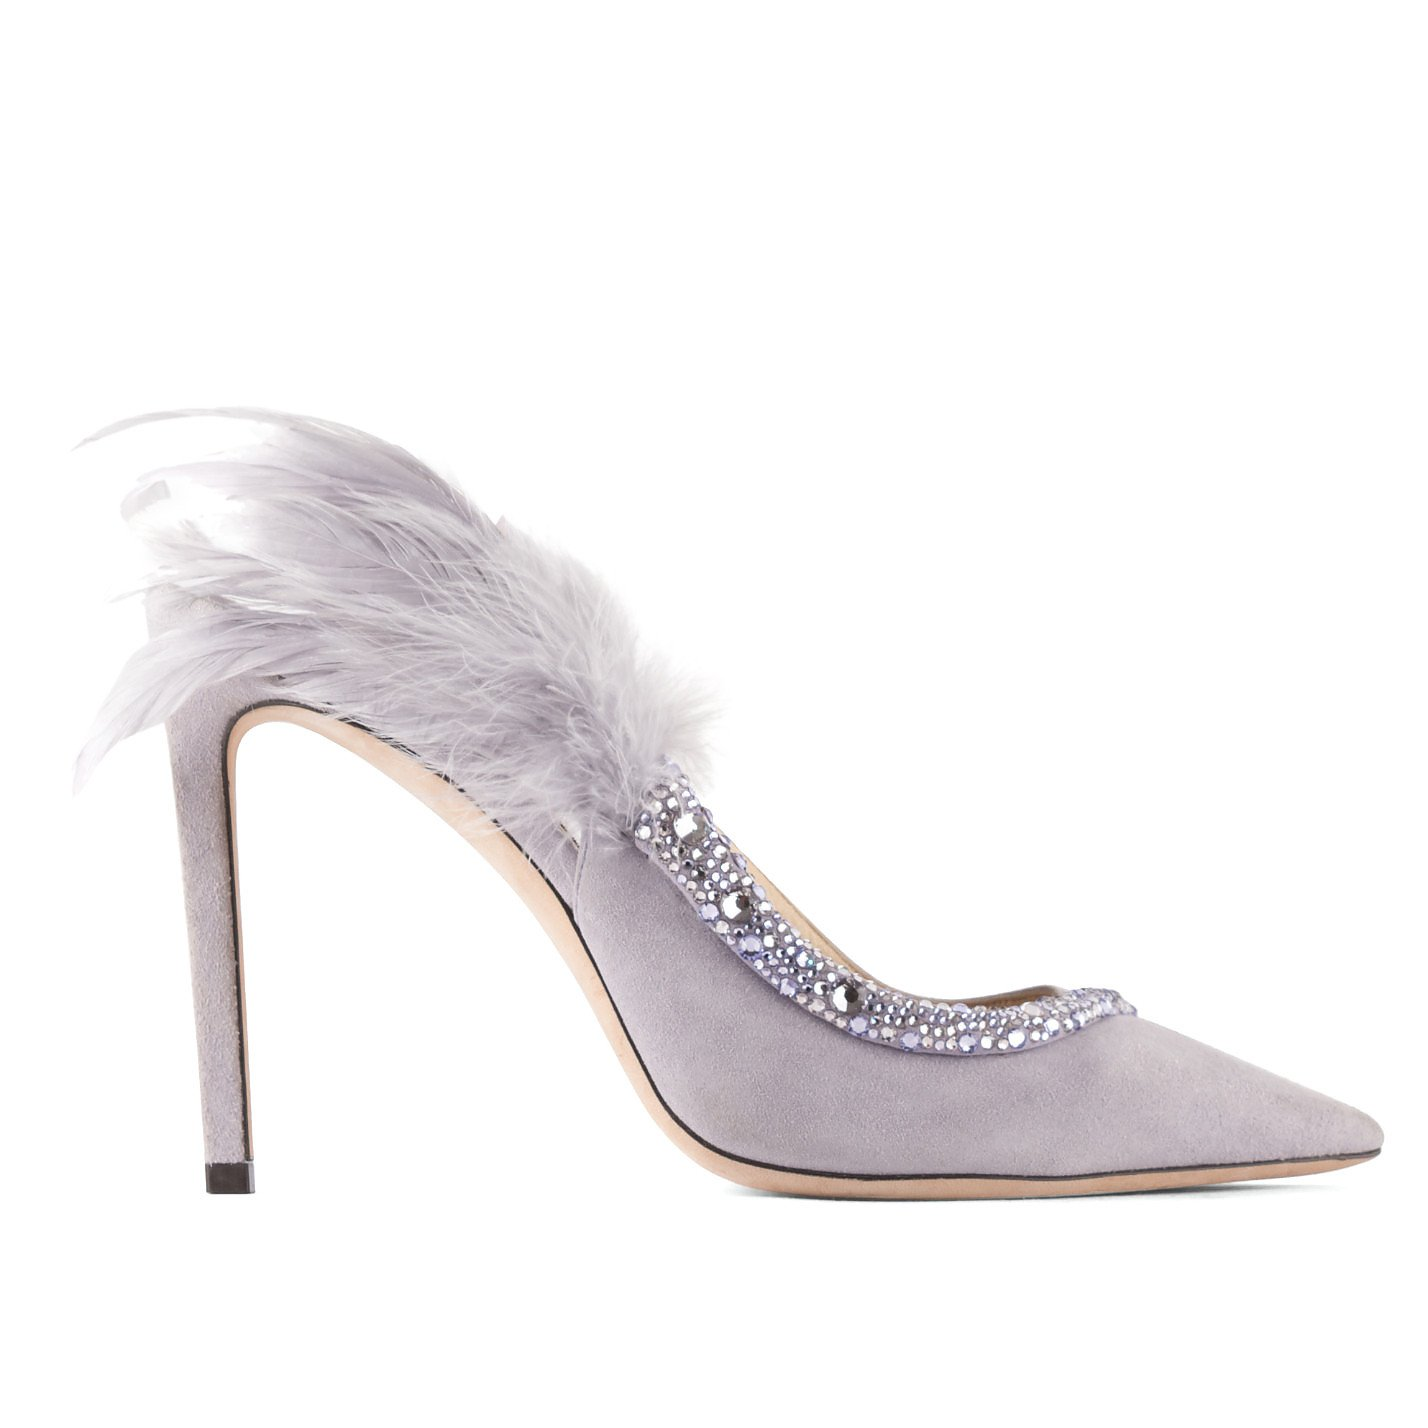 Jimmy Choo Tacey Crystal & Feather Embellished Slingback Sandals